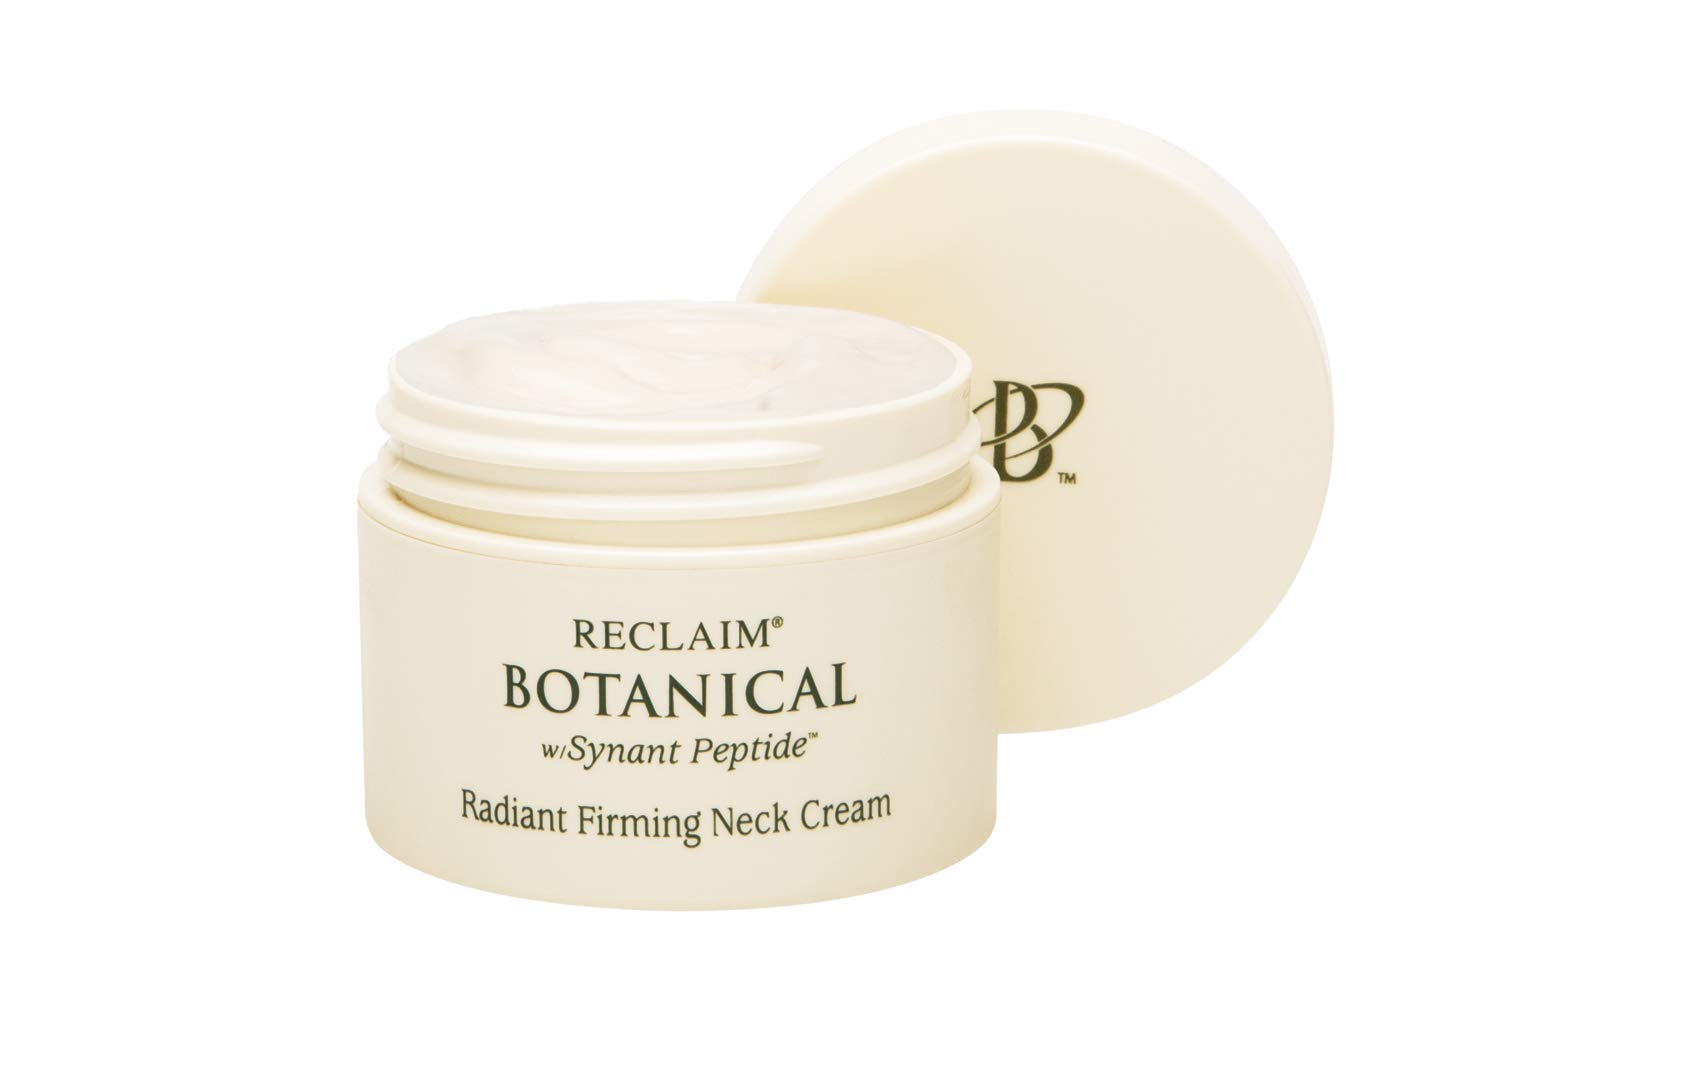 Principal Secret - Reclaim Botanical - Radiant Firming Neck Cream - 90 Day Supply/1 Ounce